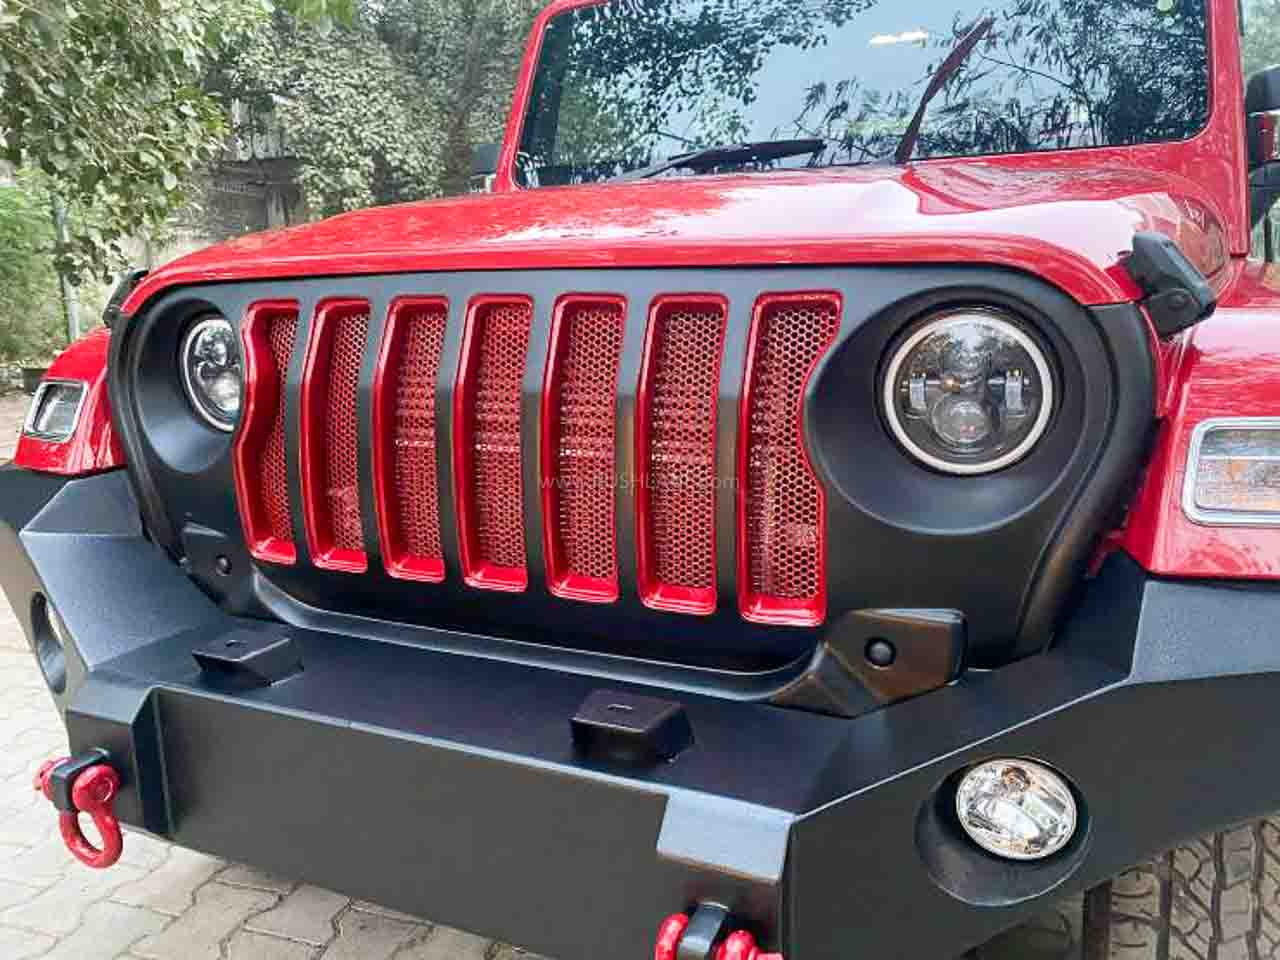 2020 Mahindra Thar Modified With Aftermarket Accessories Exteriors Interiors